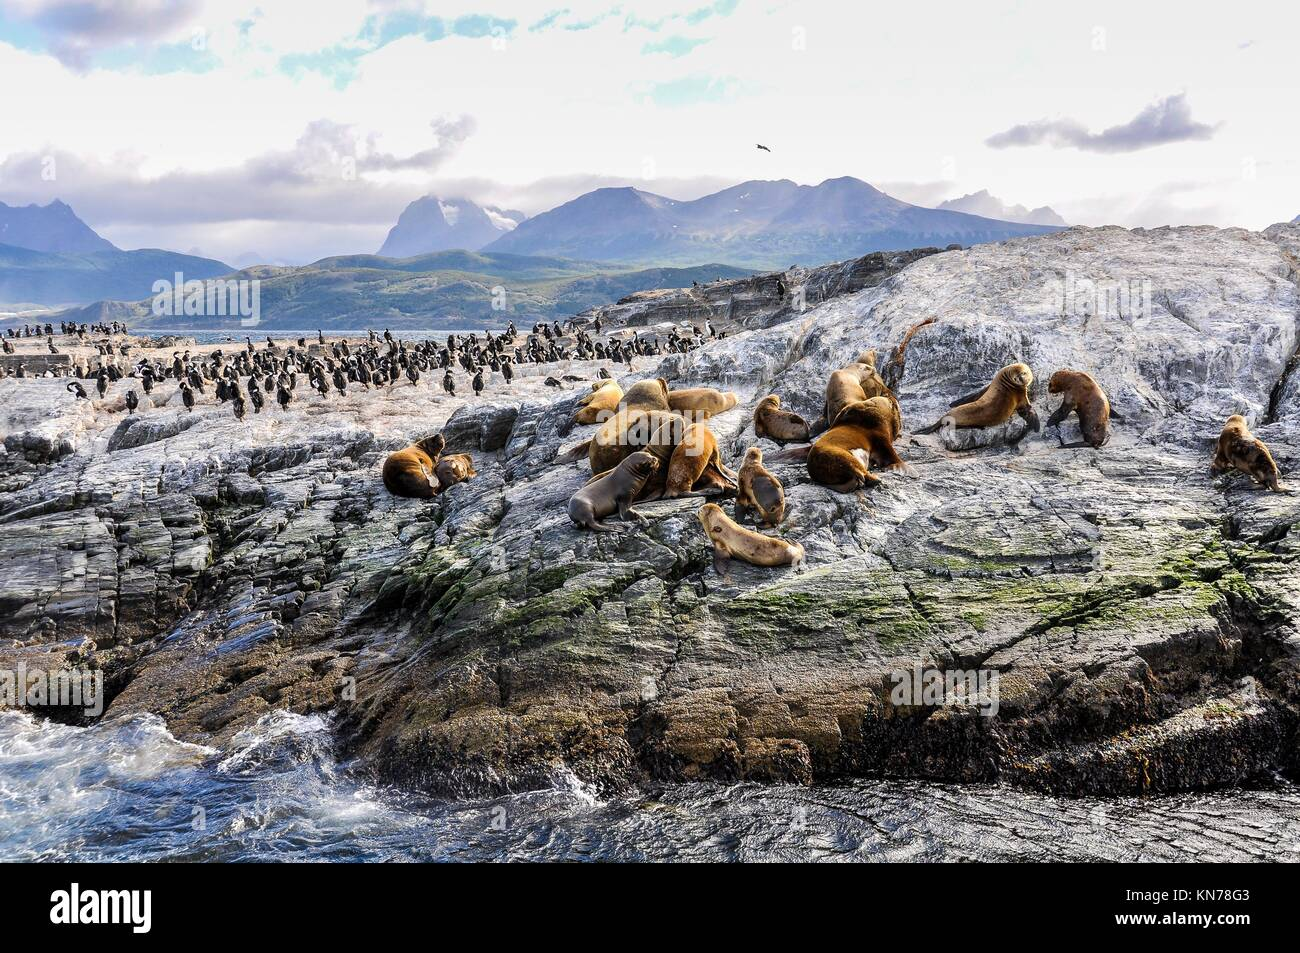 A big group of seals and sea lions, Beagle Channel, Ushuaia, Argentina. - Stock Image